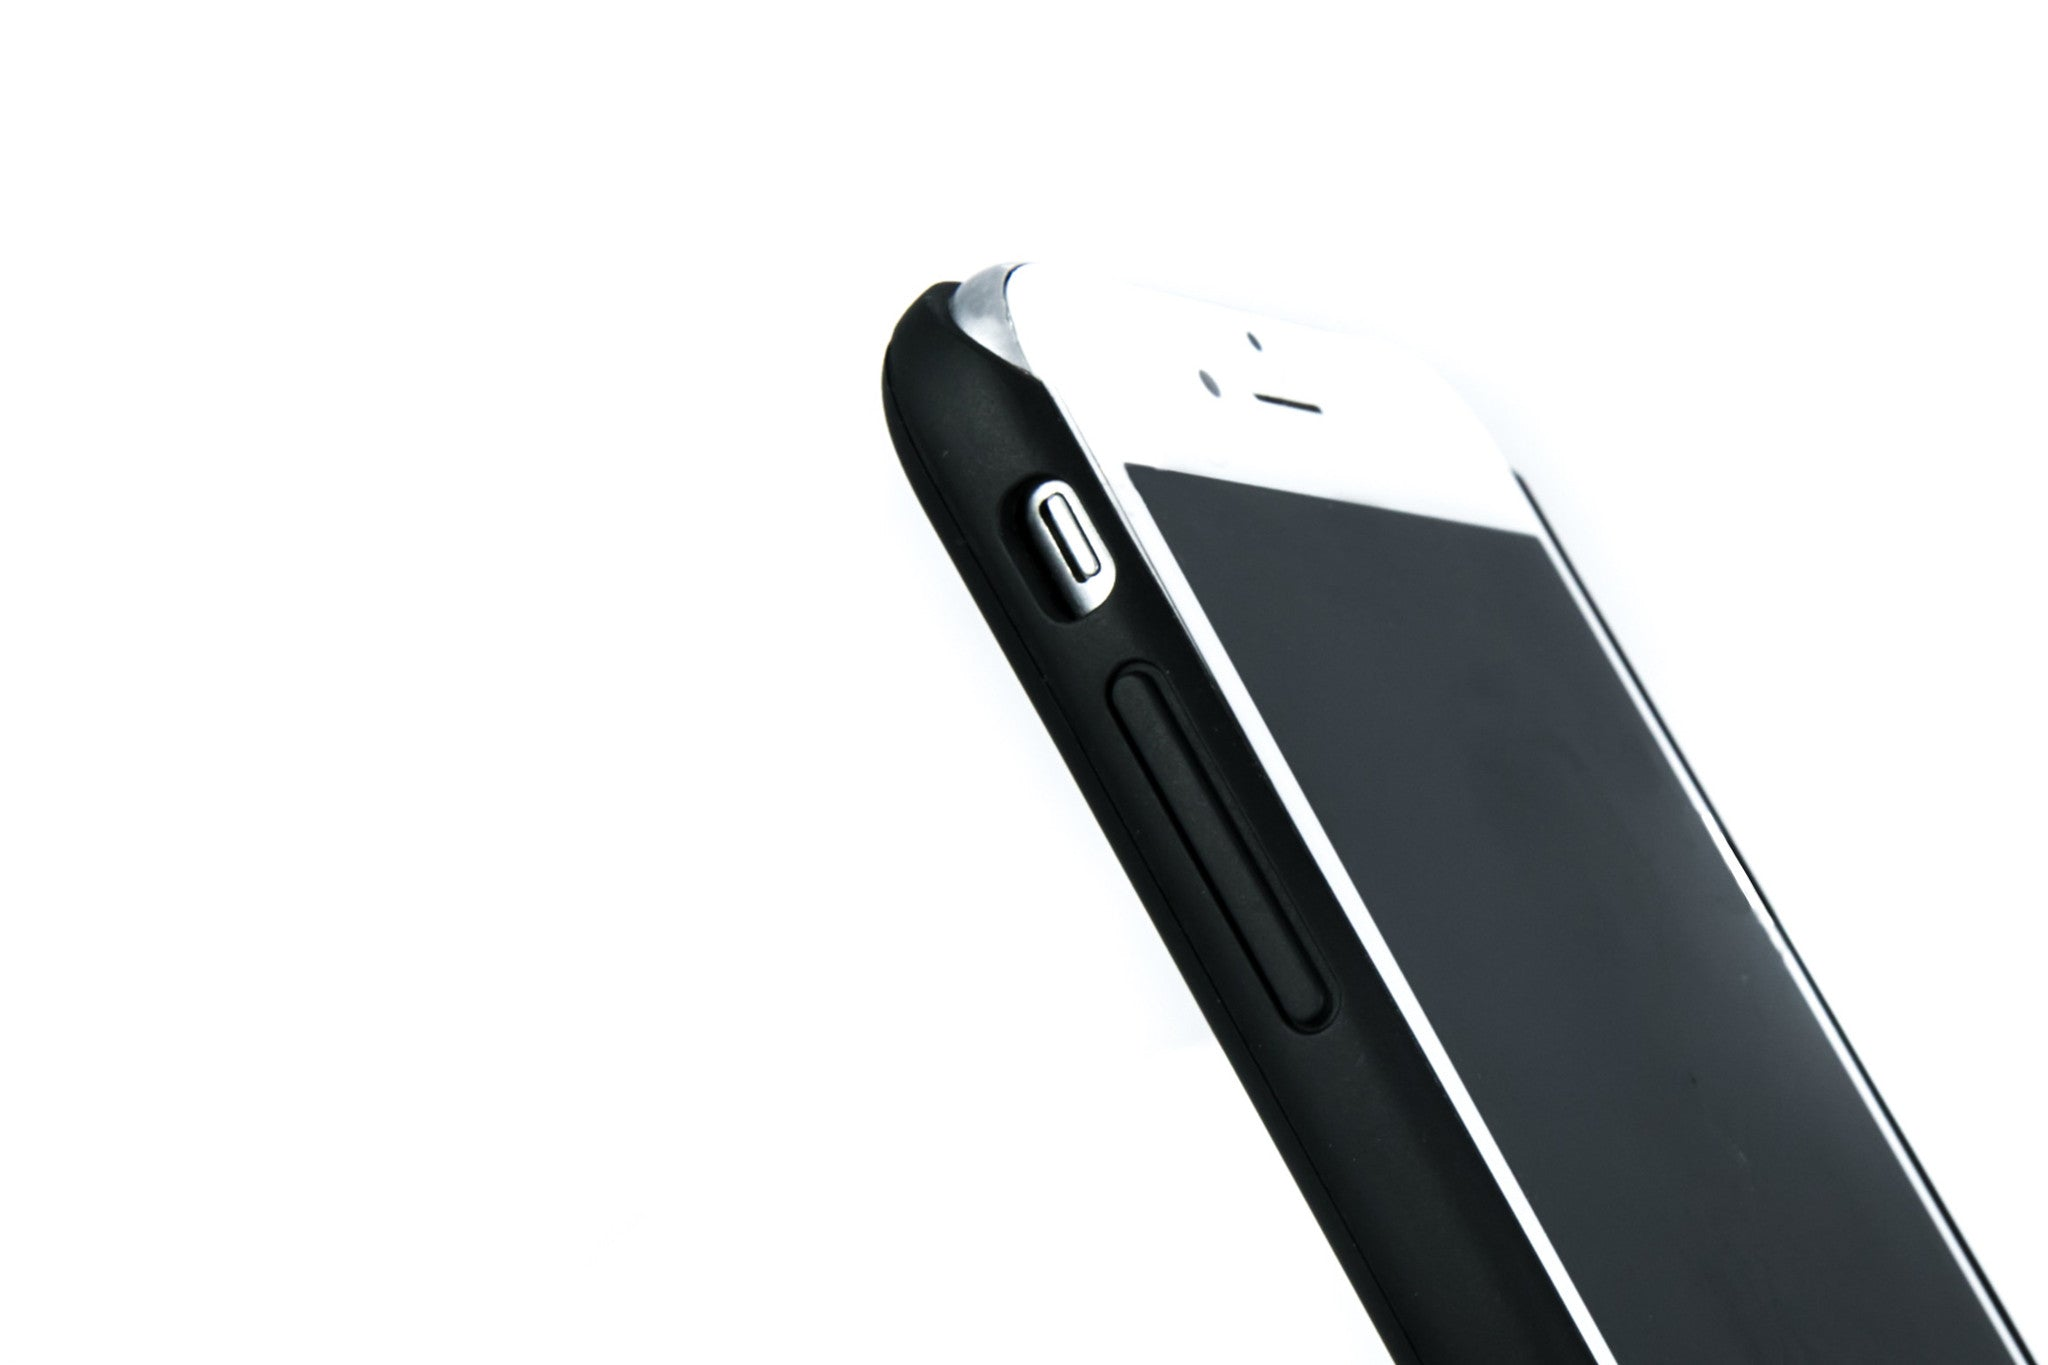 Here's what top tech magazines are saying about the world's slimmest iPhone charger case